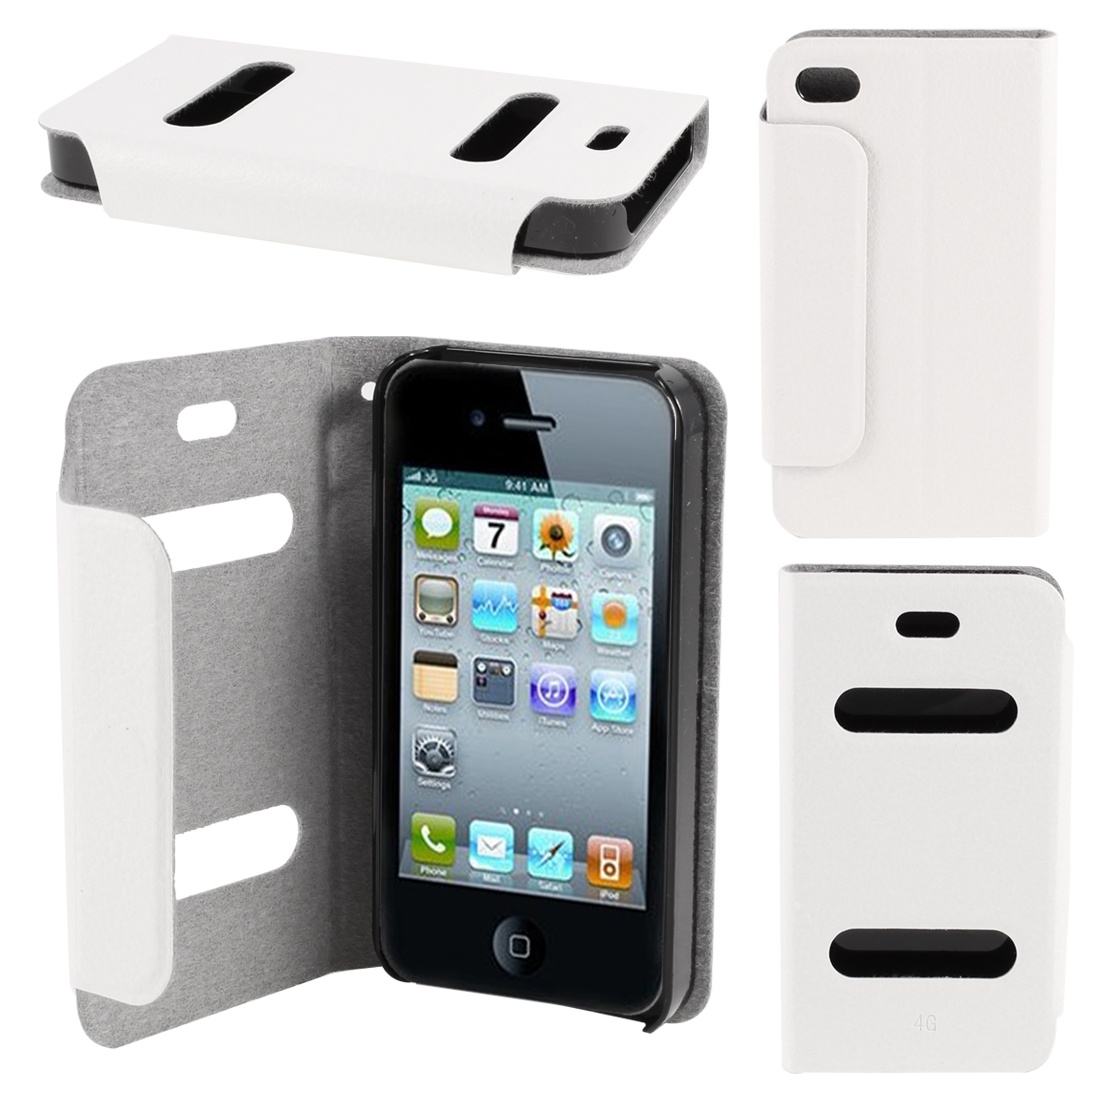 White PU Leather Protective Magnetic Closure Flip Case Cover for iPhone 4 4G 4S